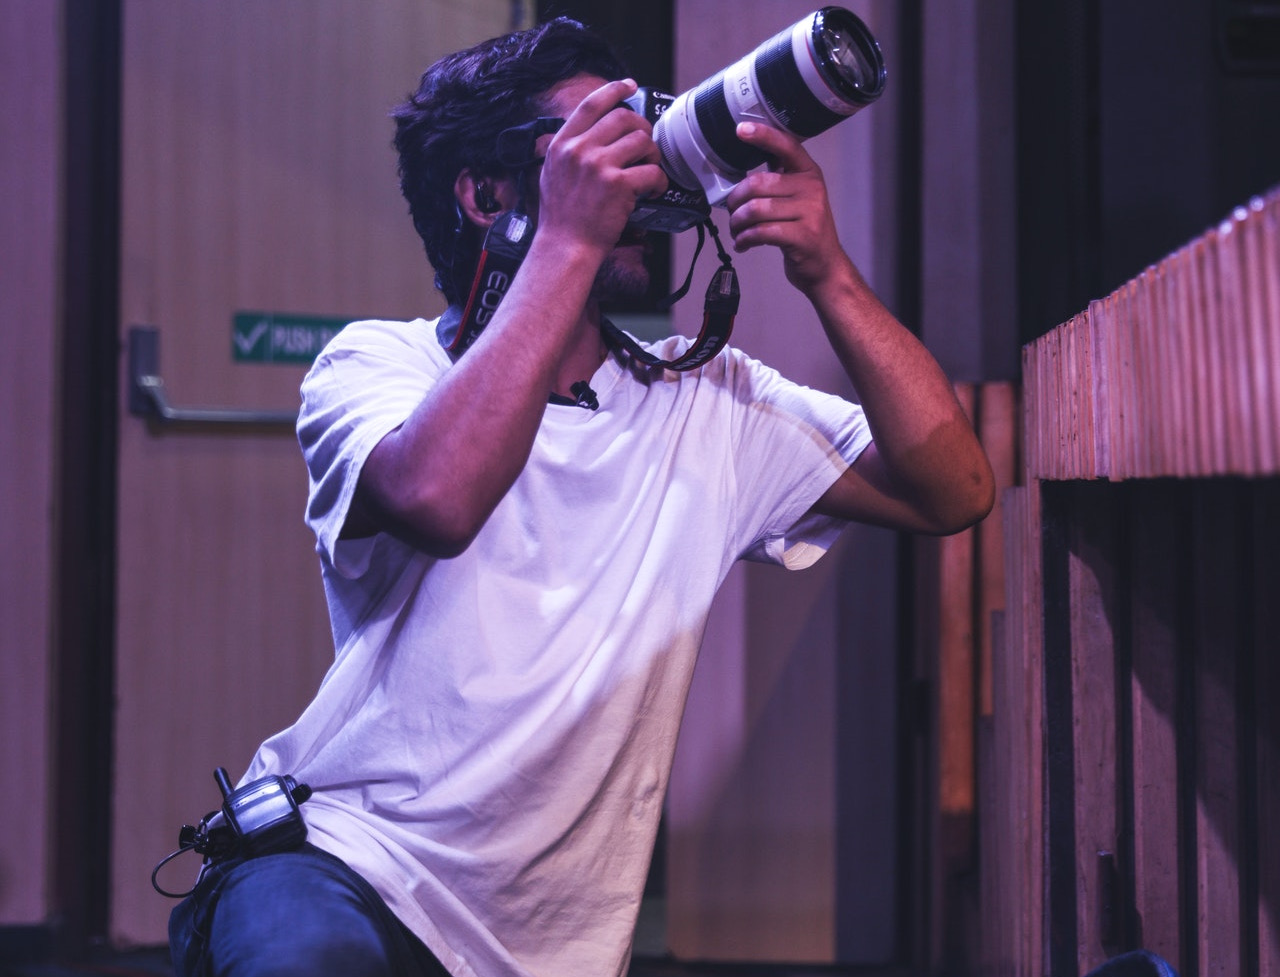 event photographer crouched by stage taking photo with DSLR camera, photography career